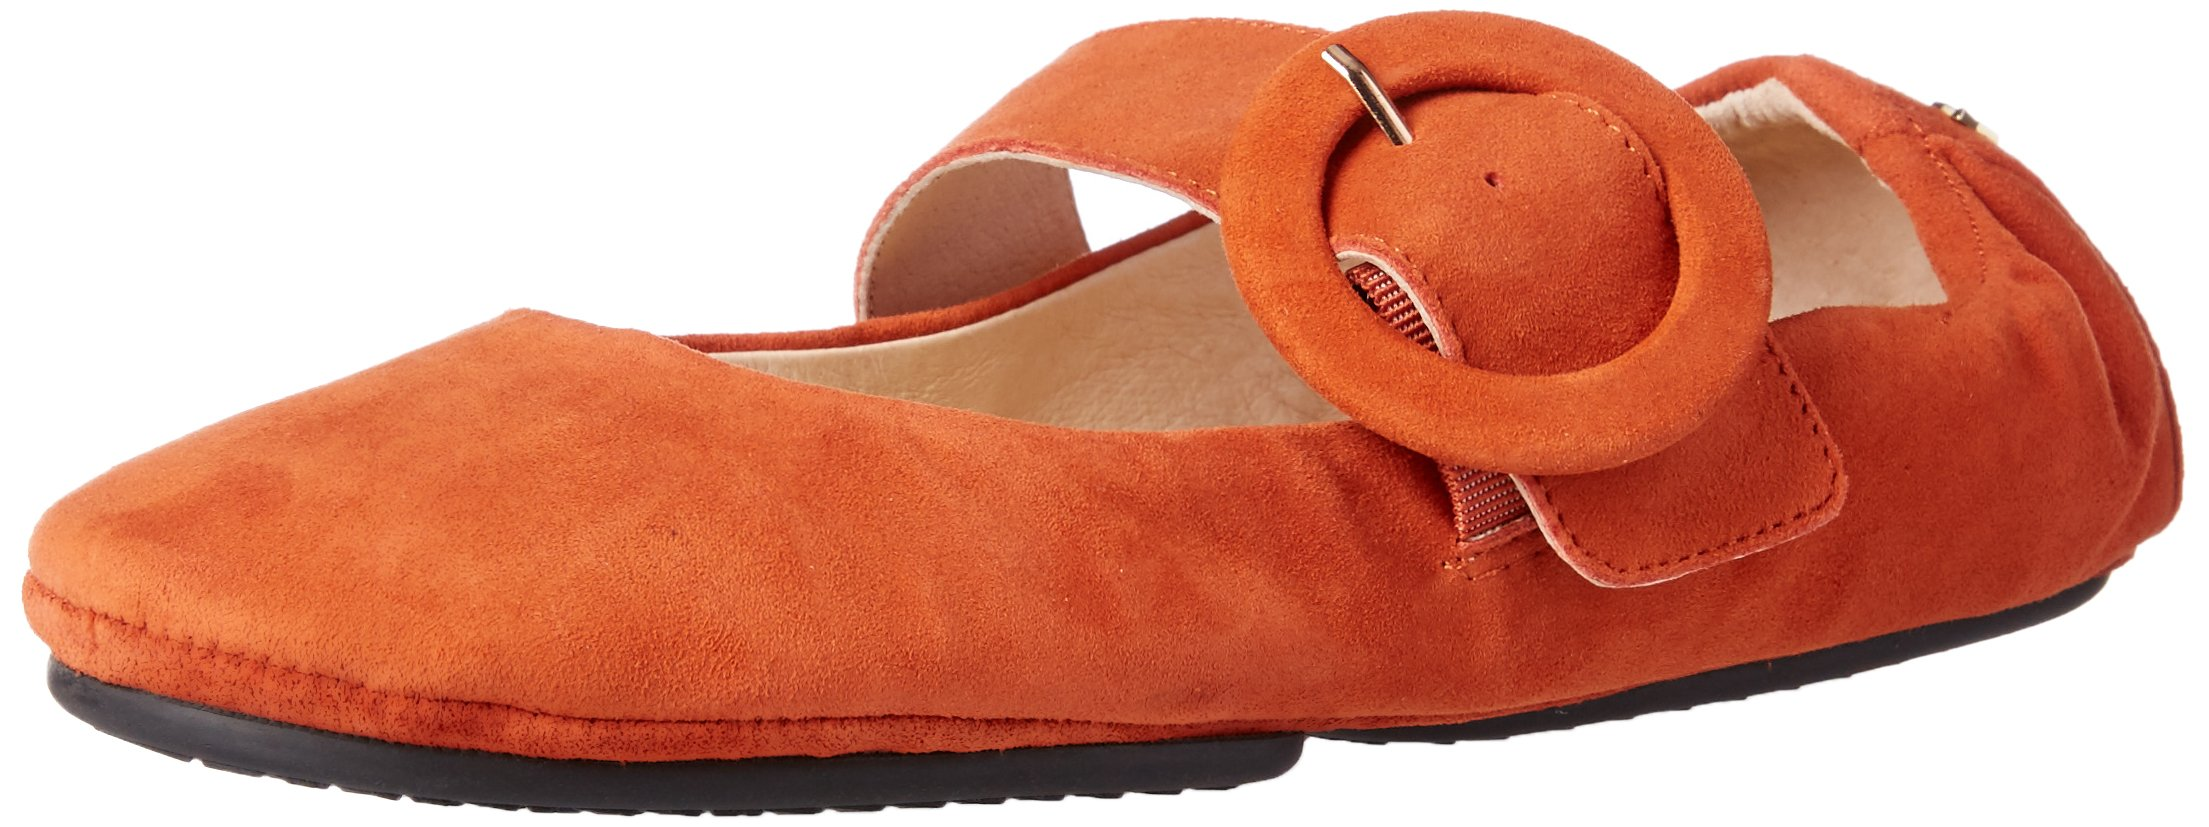 Yosi Samra Women's Stephanie Ballet Flat, Rust Brown, 10 M US